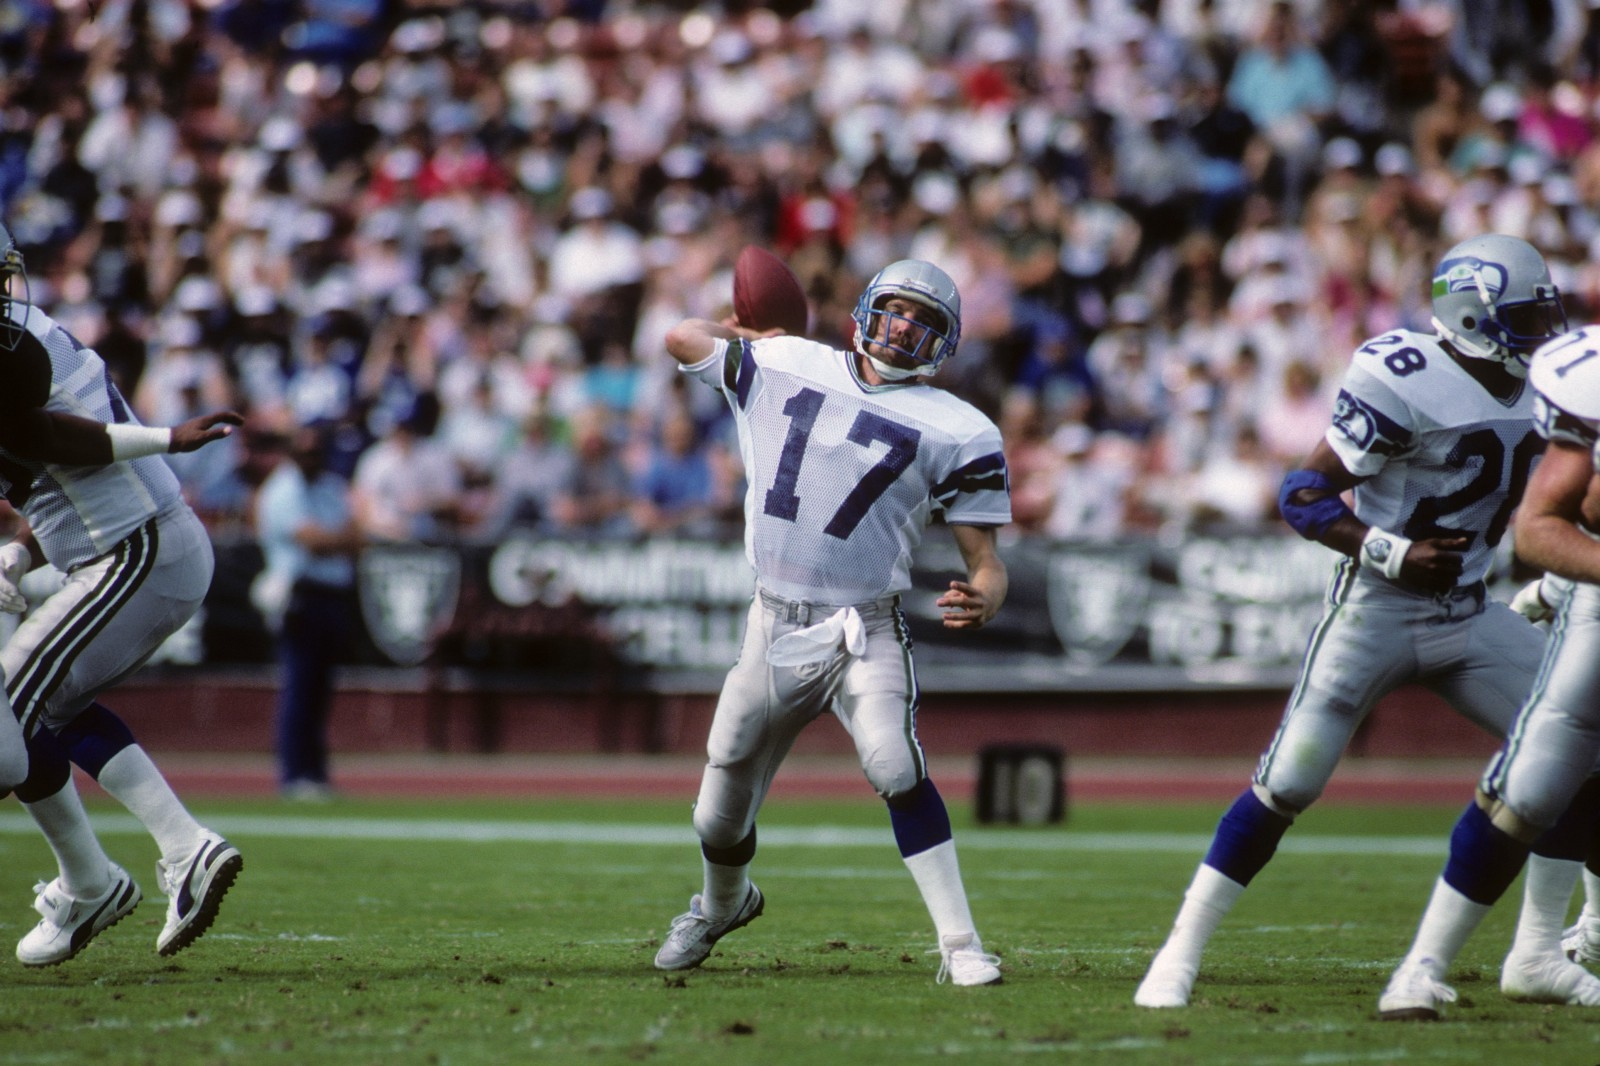 From Humble Beginnings Dave Krieg Became One Of The Most Prolific Passers In NFL History And Nearly 20 Years After His Retirement He Still Sits